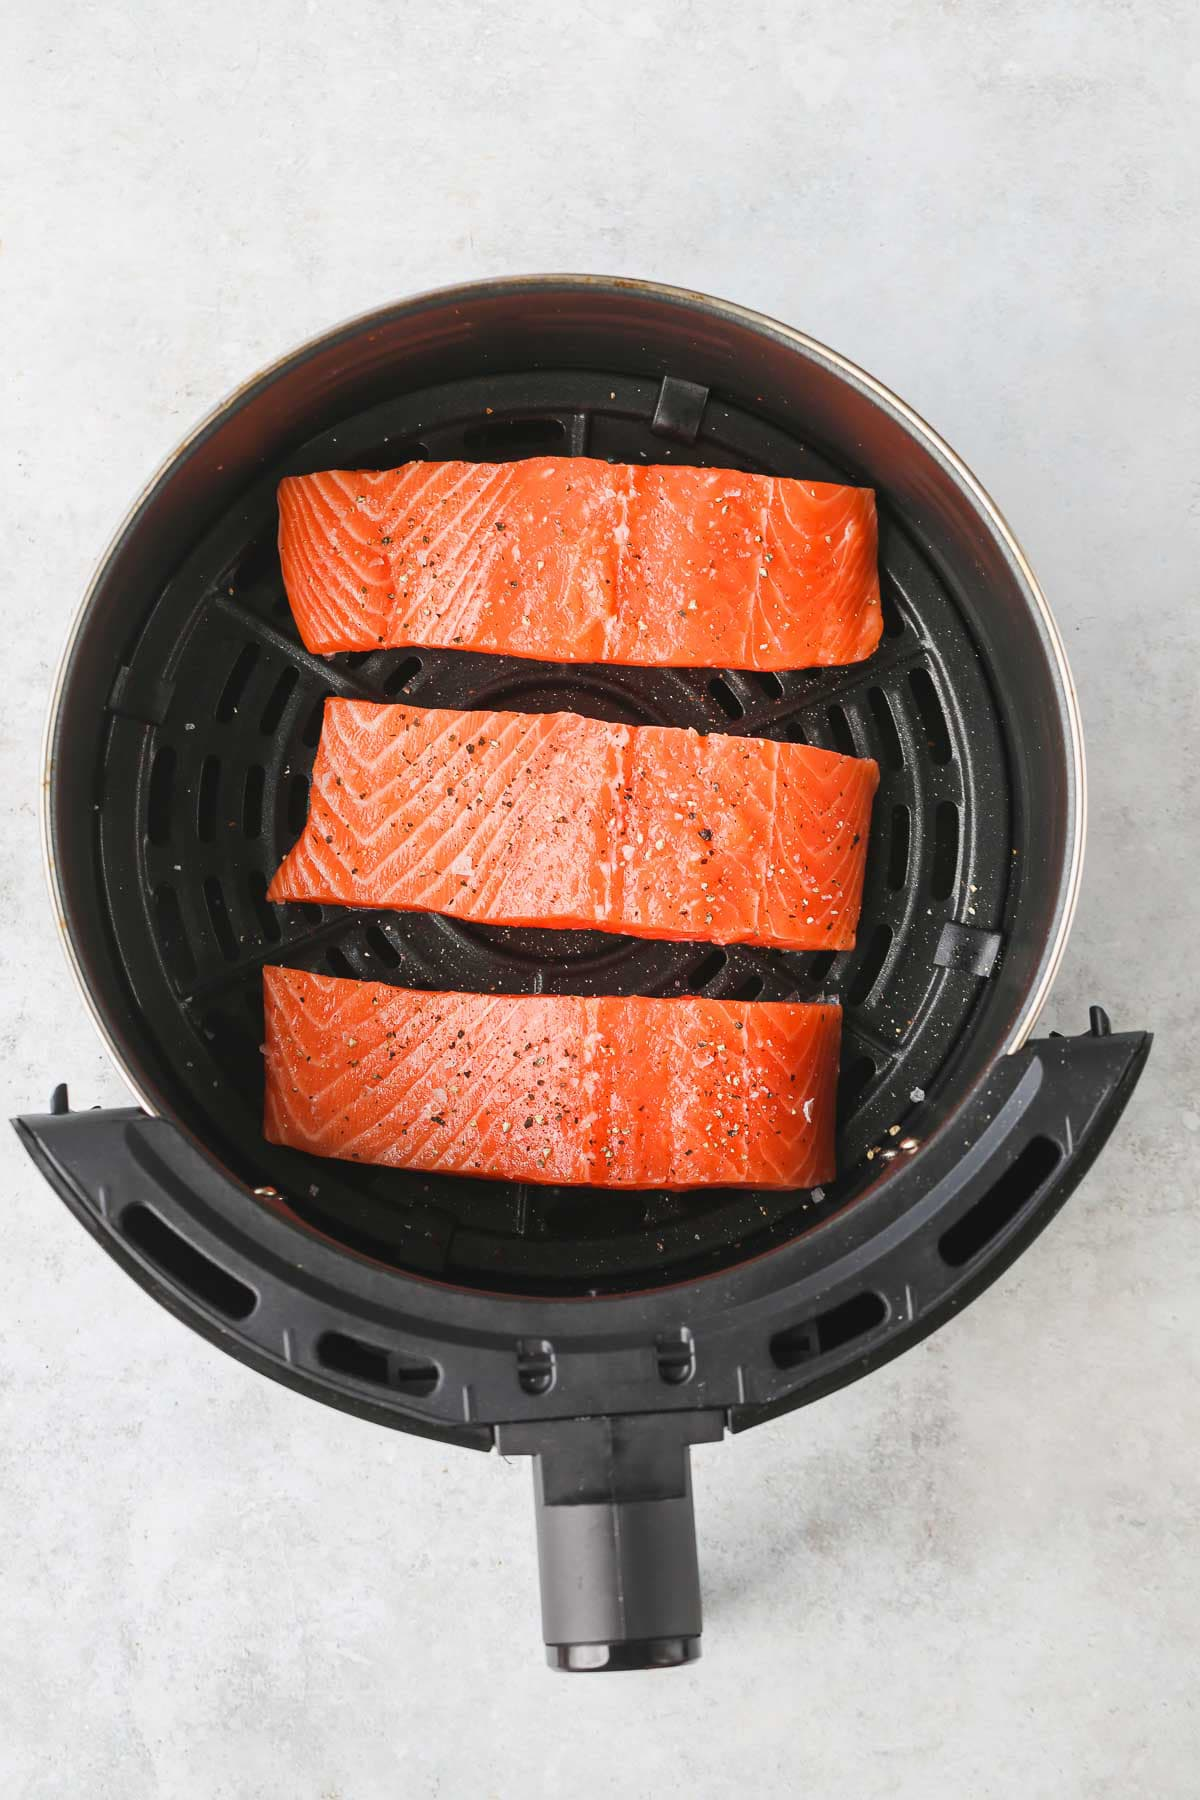 Top view of an air fryer basket with three raw salmon fillets (before cooking).